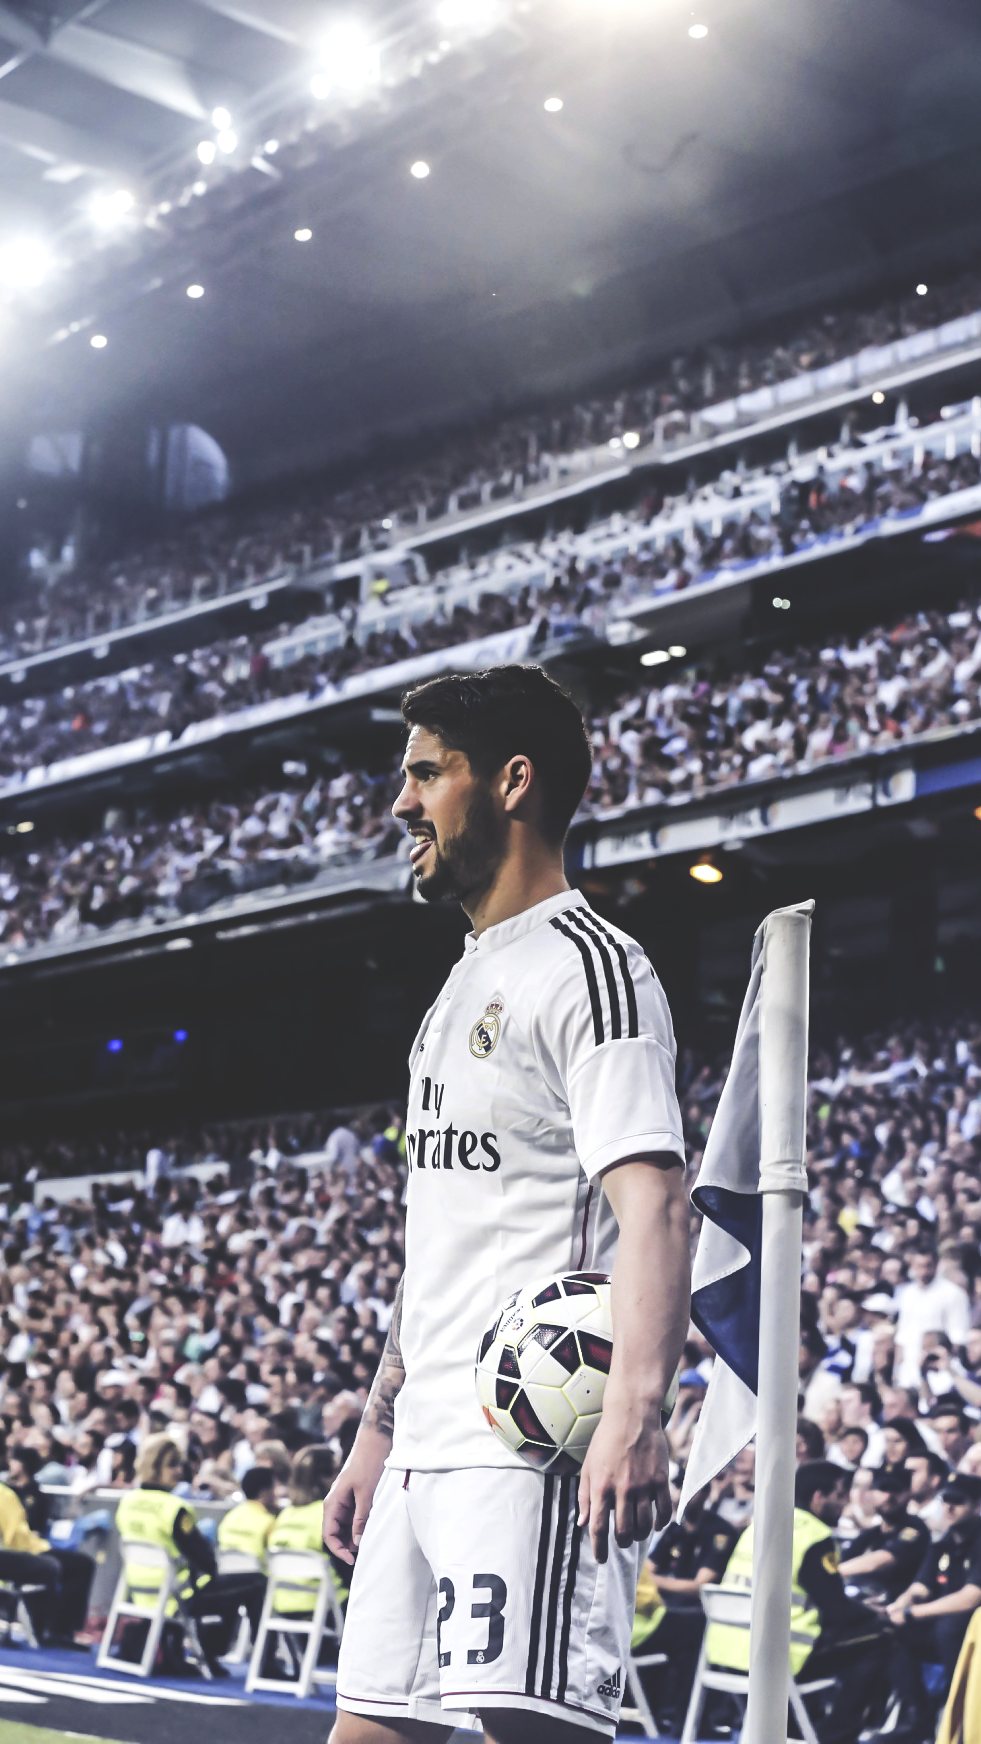 Iphone wallpaper tumblr football - Isco Alarcon Iphone Wallpapers Football Pinterest Real